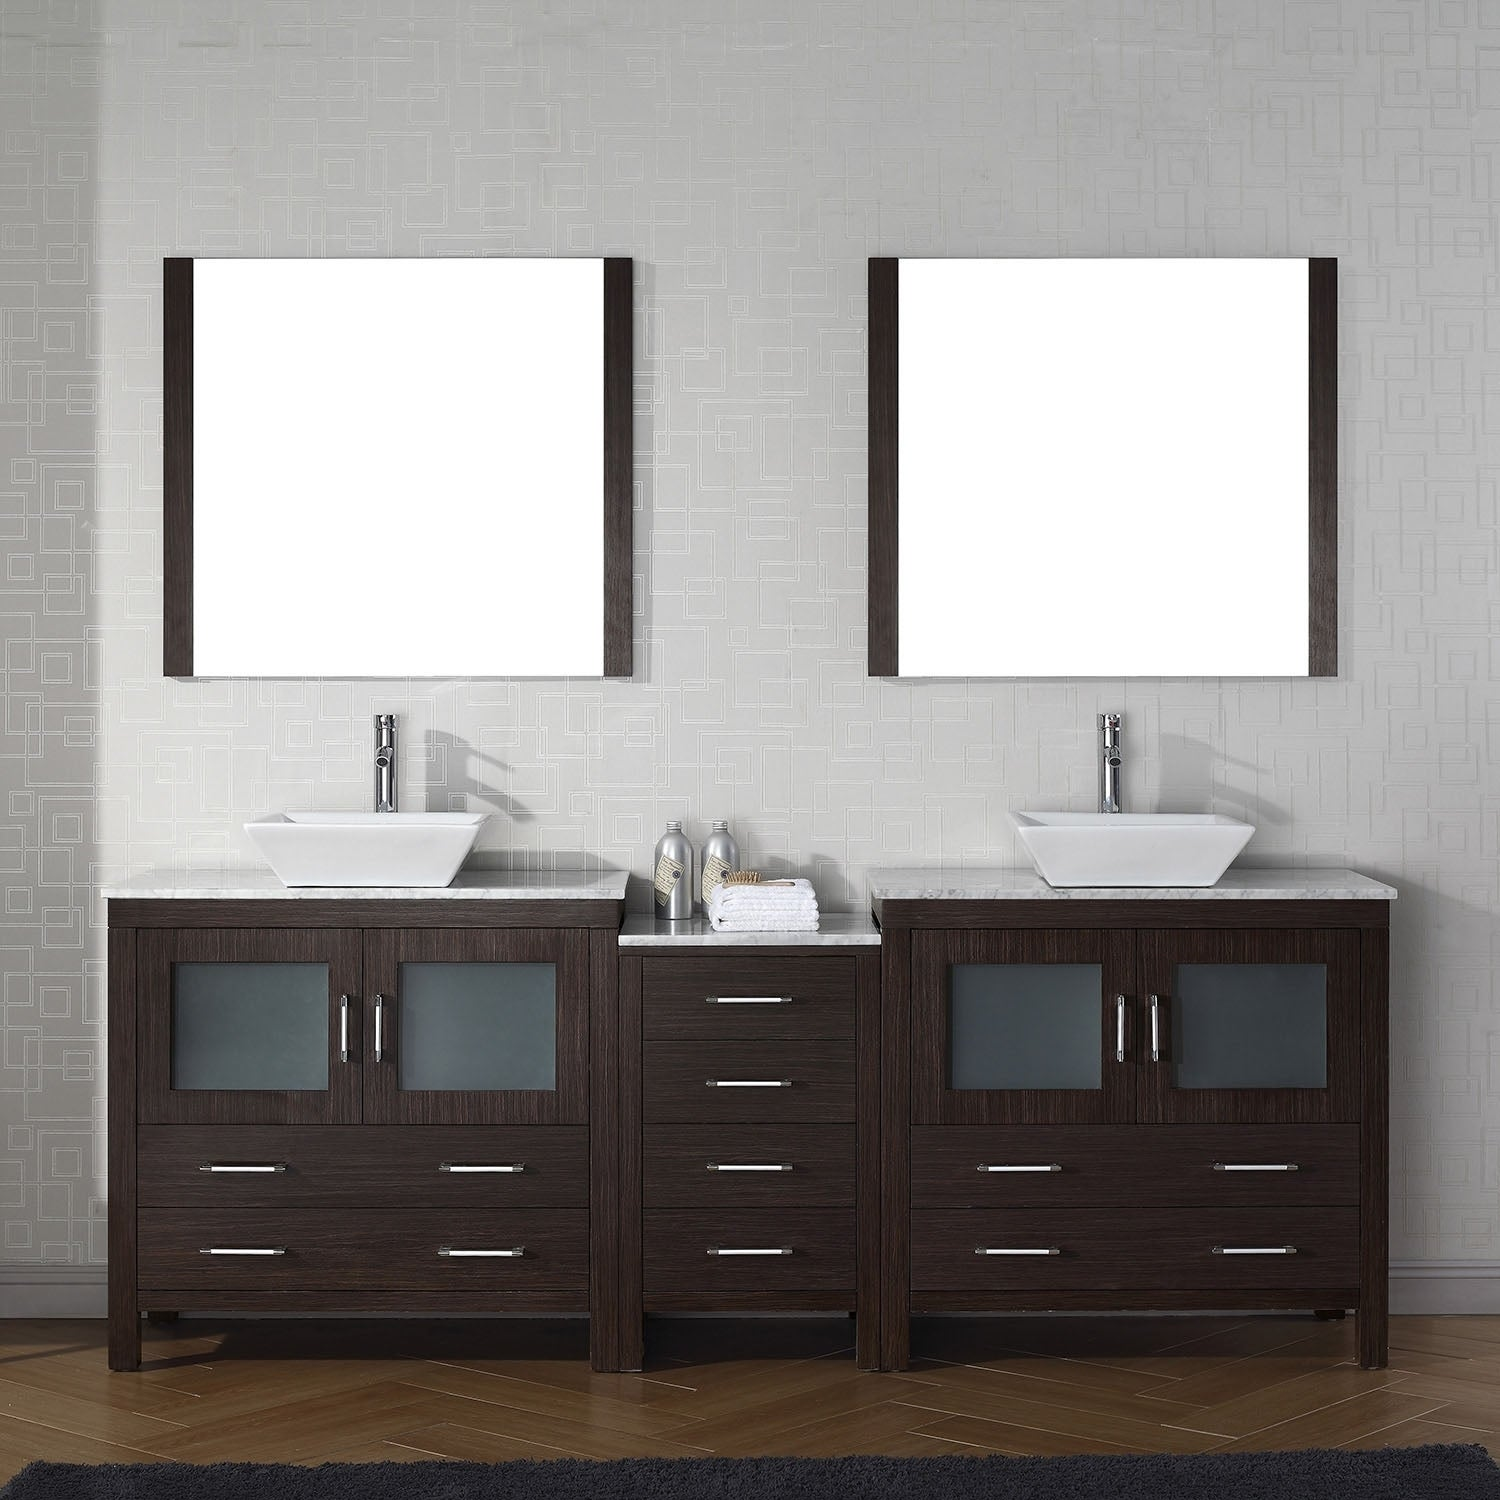 Virtu Usa Dior 82 Inch Carrara White Marble Double Bathroom Vanity Set With Faucet Options Free Shipping Today 23642648